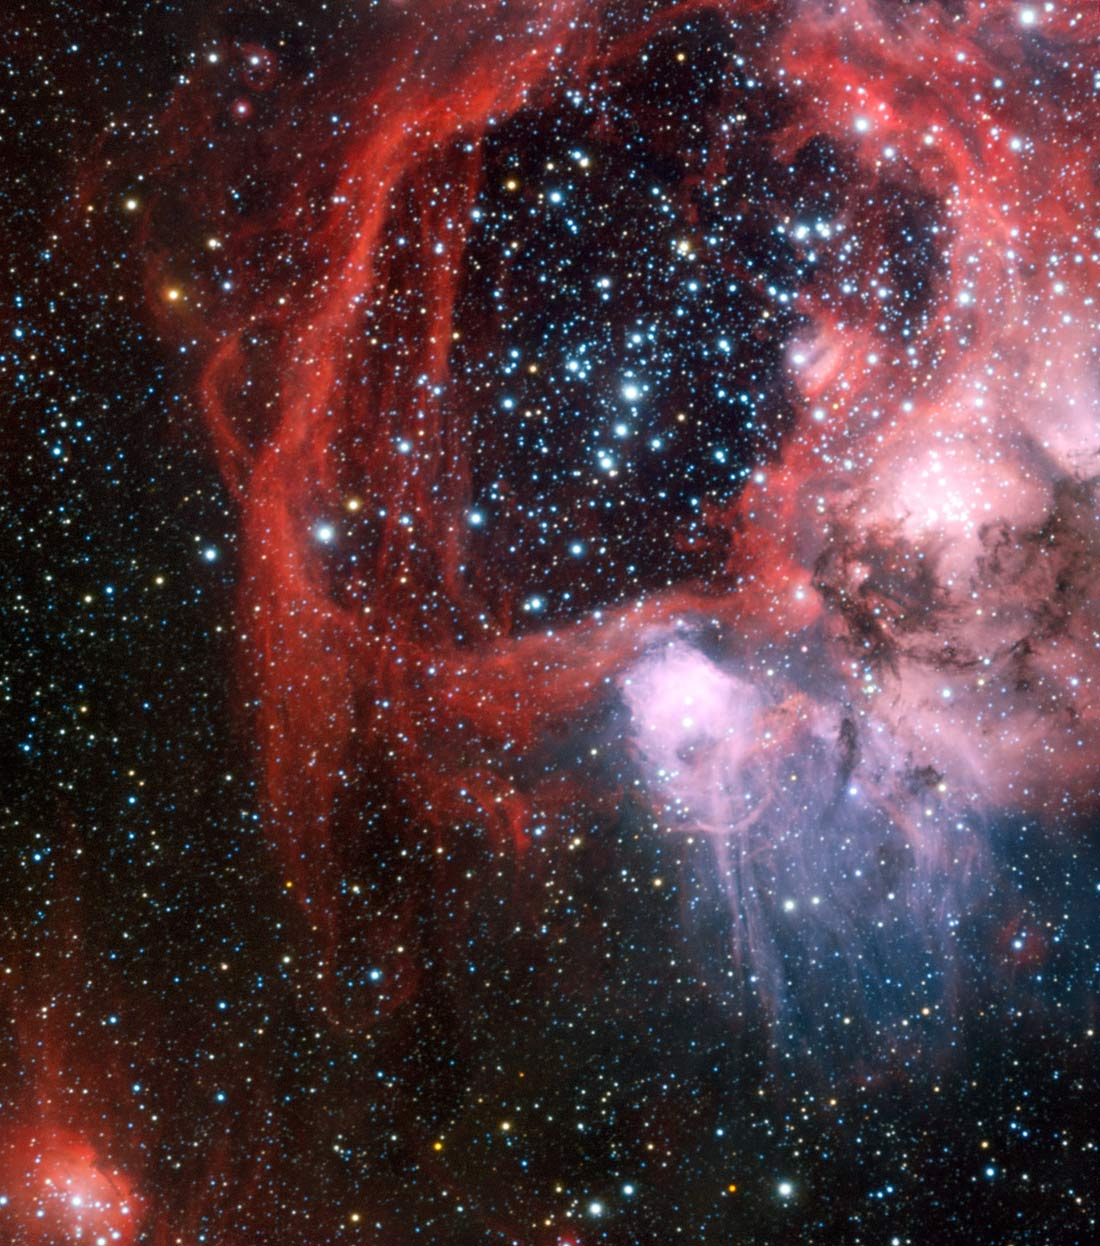 Giant Space 'Superbubble' Spawned by Exploding Stars